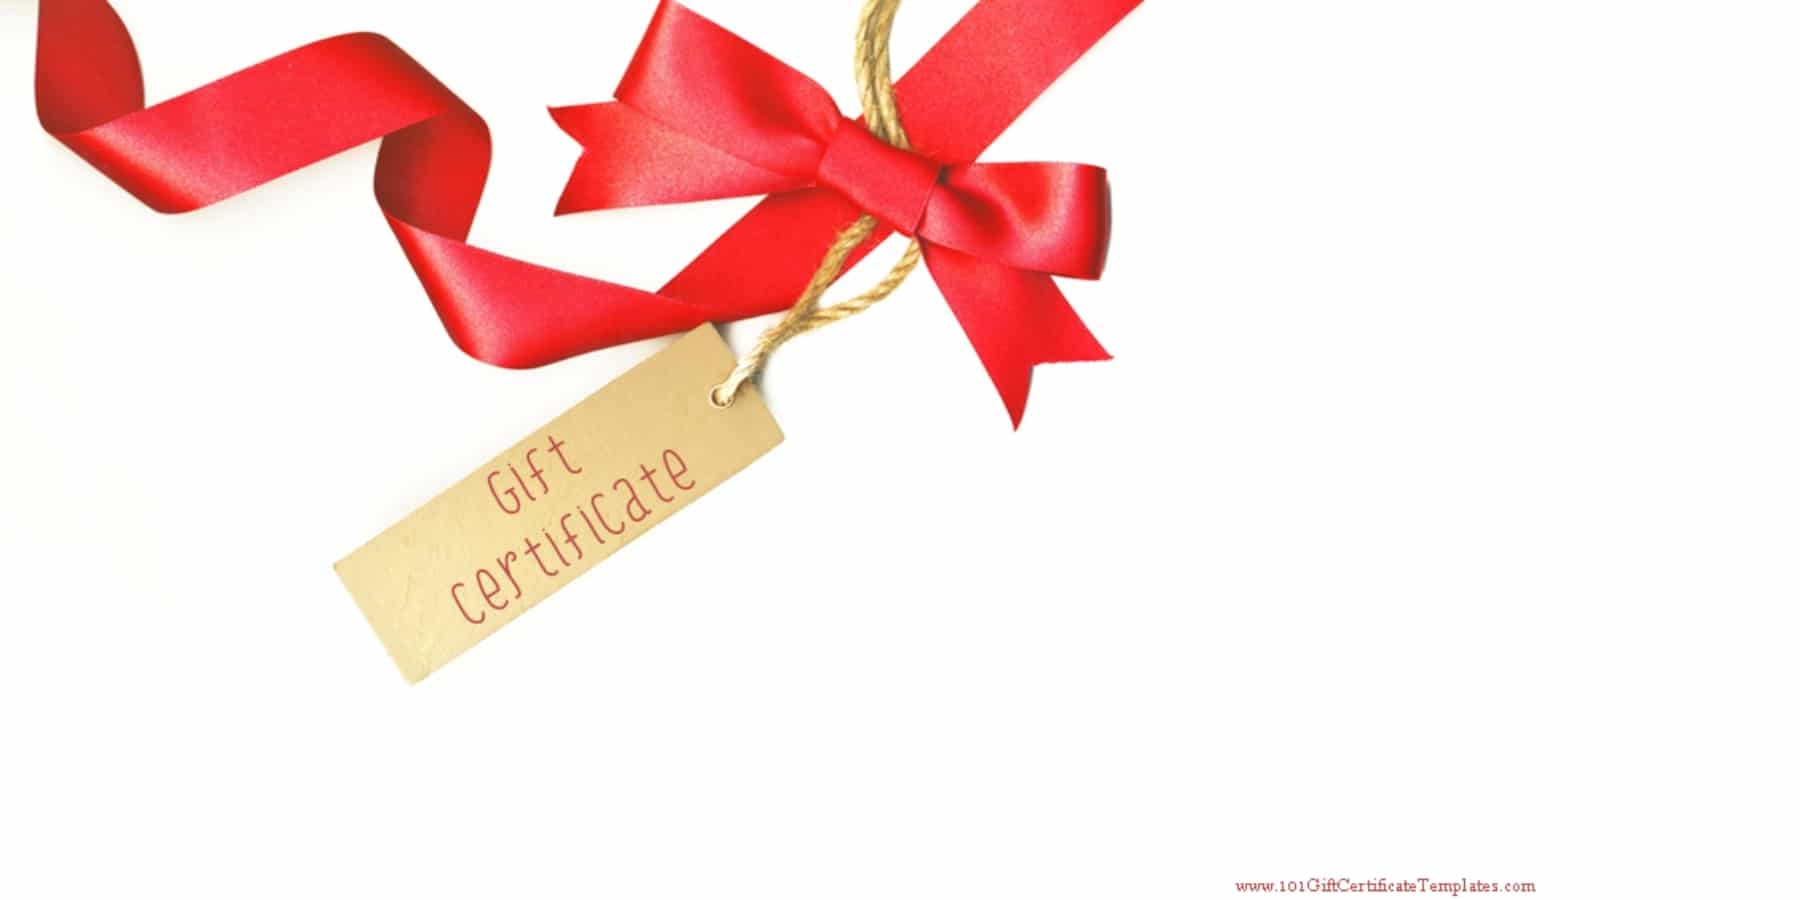 Printable gift certificate templates gift card which can be customized in any way with our gift card maker saigontimesfo